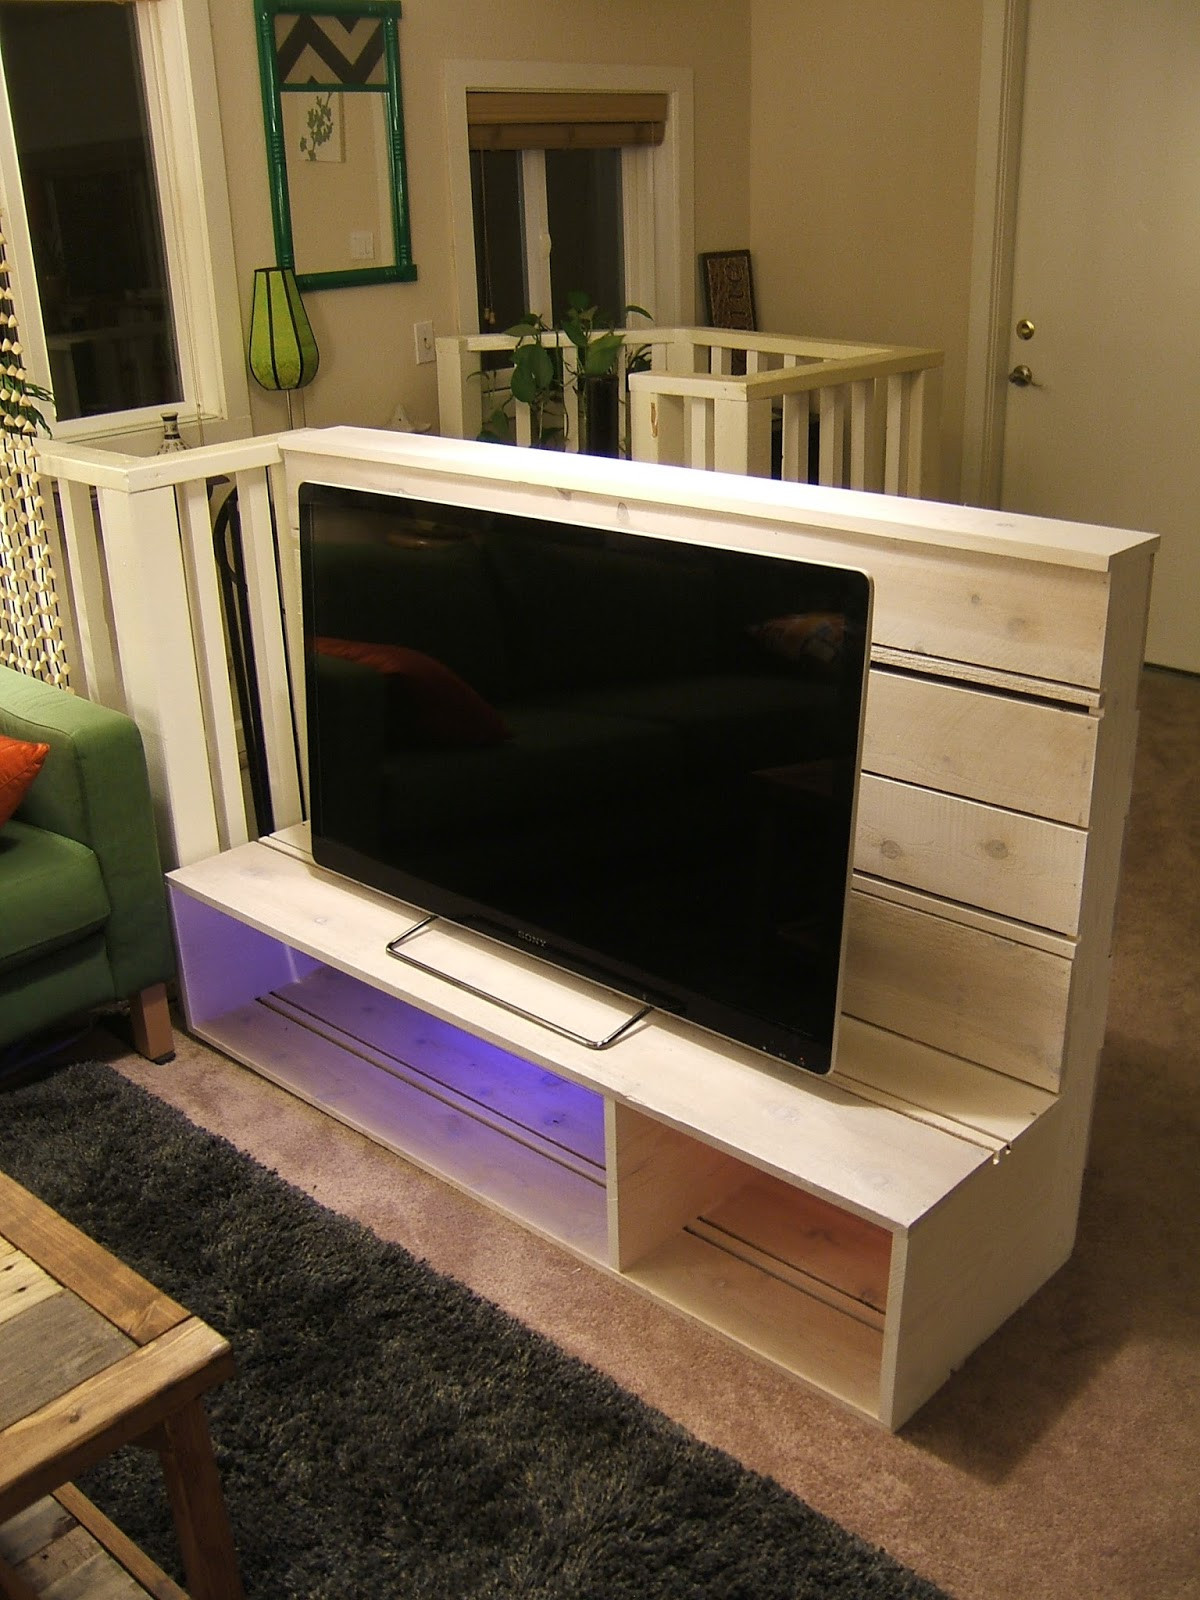 Best ideas about Tv Stand DIY . Save or Pin floors hello movie theater haha ok some night time light Now.